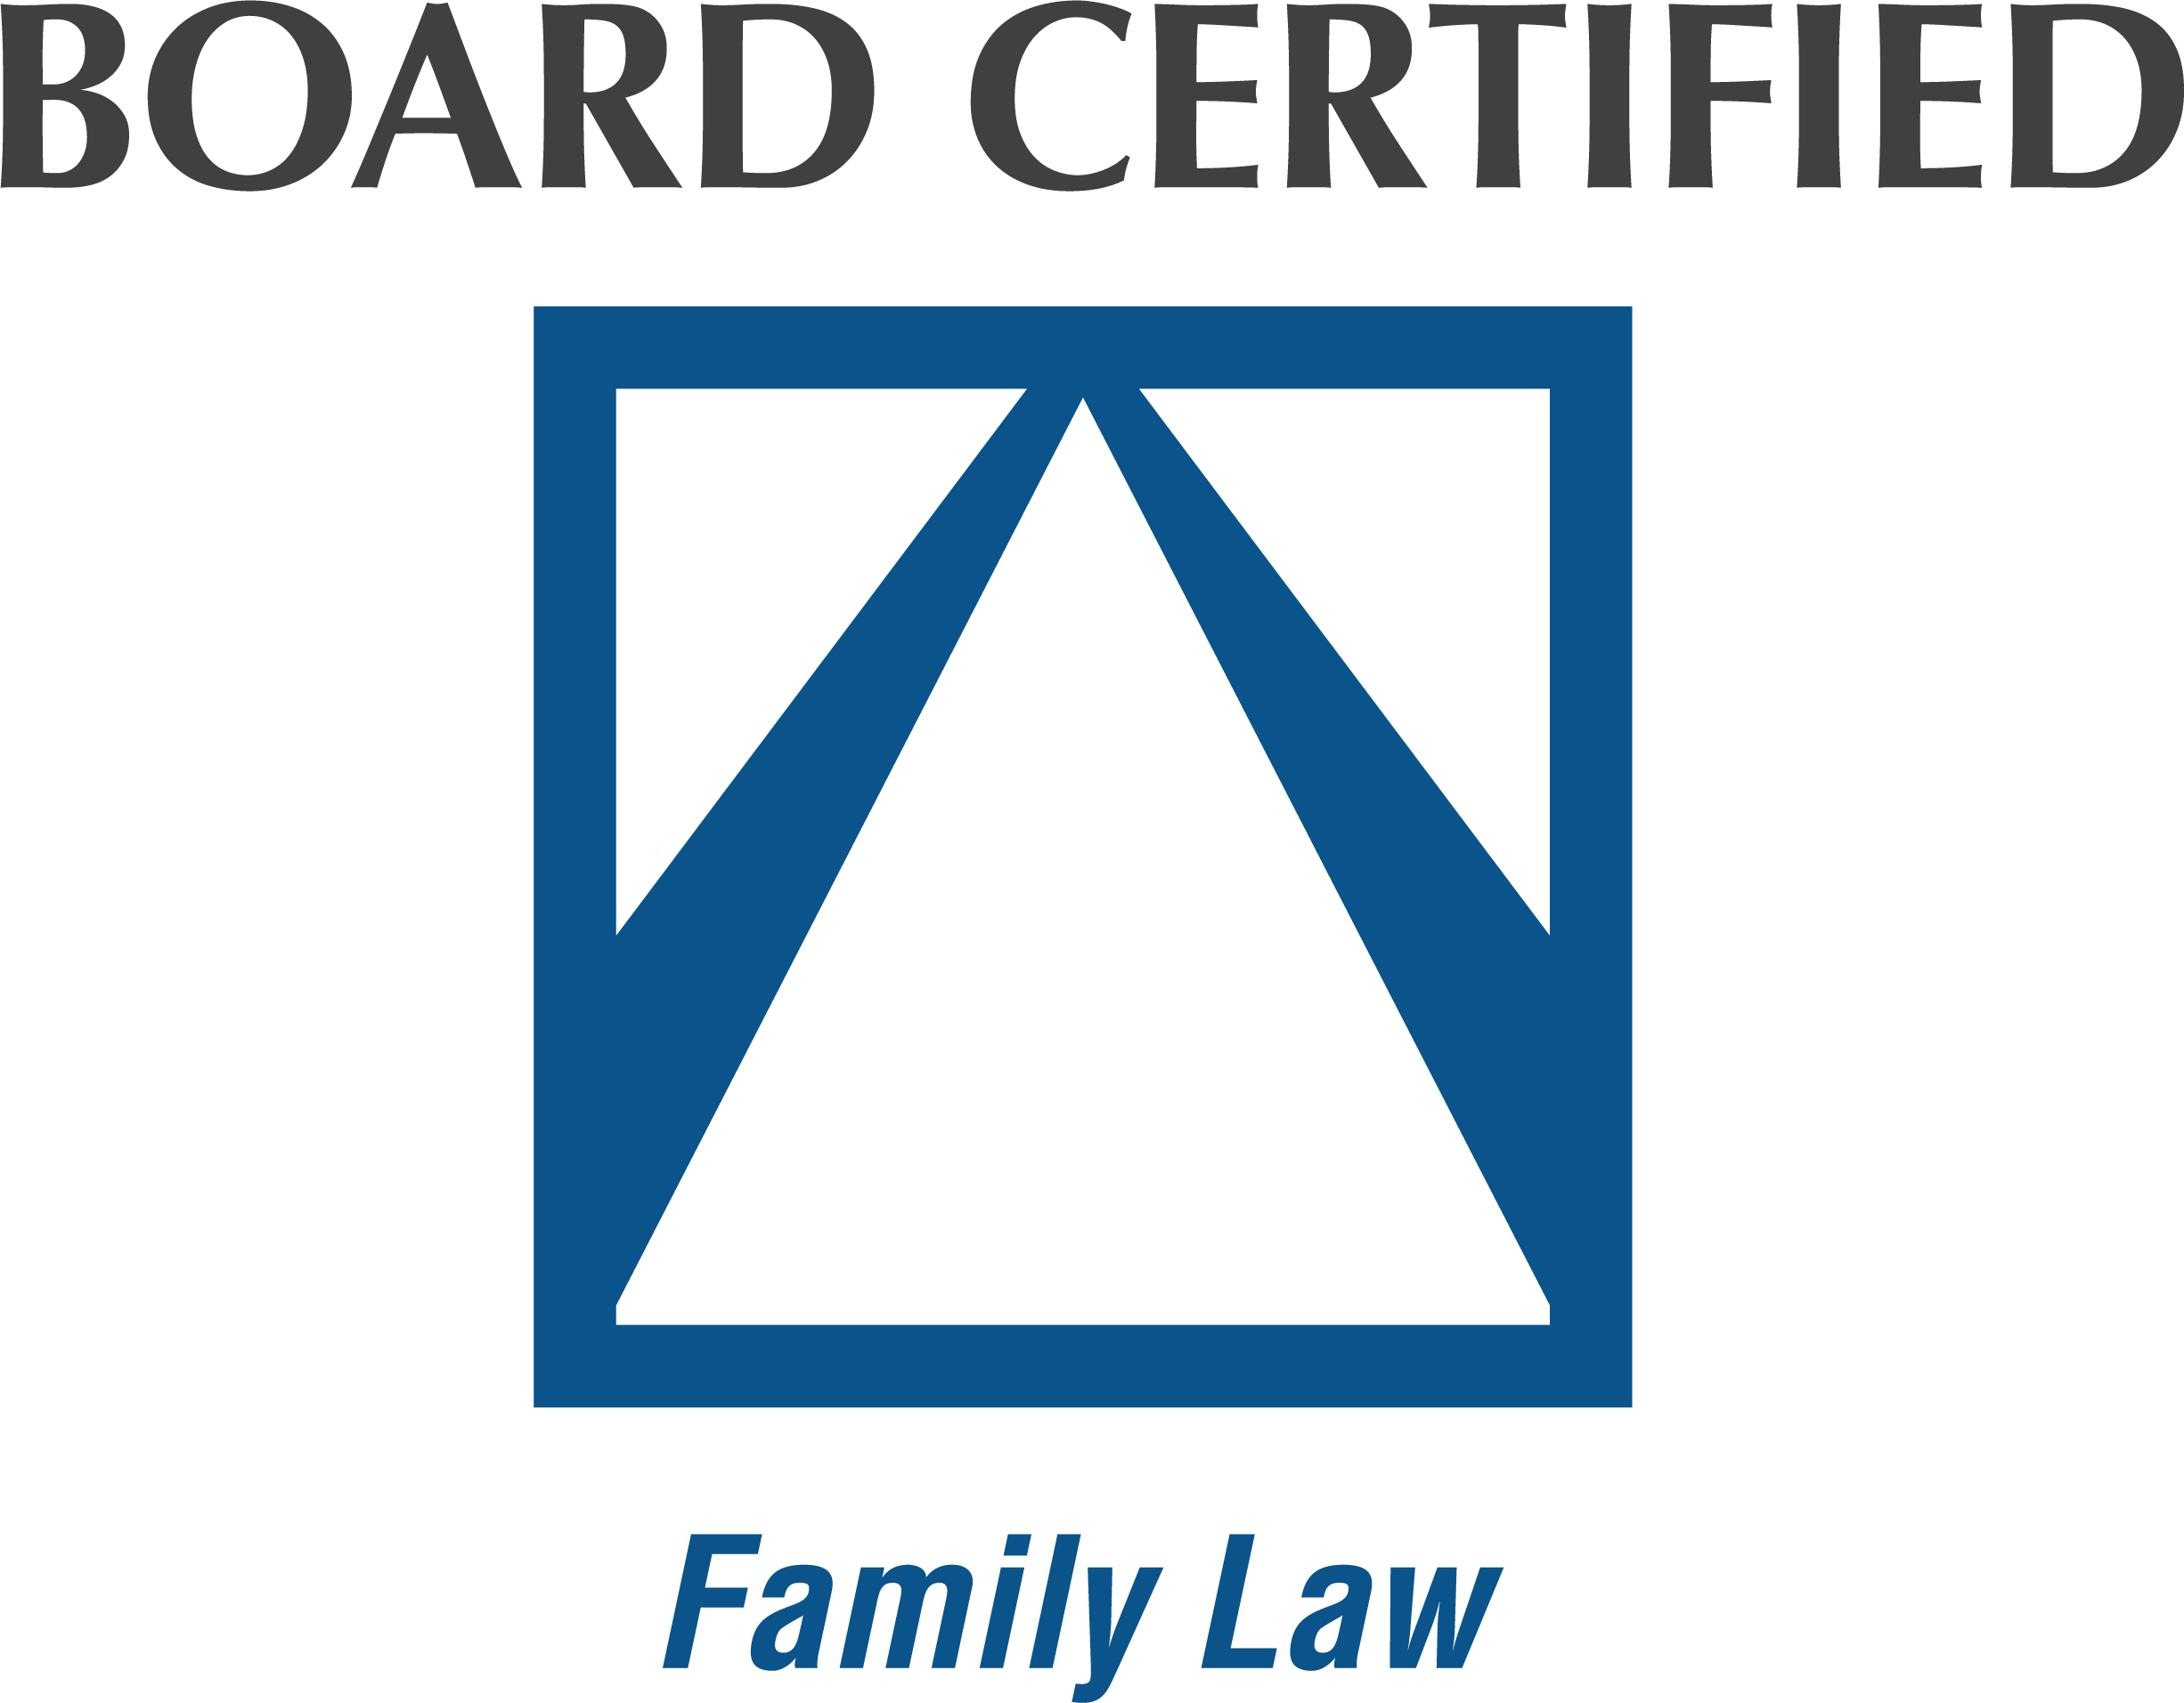 board cerified family law